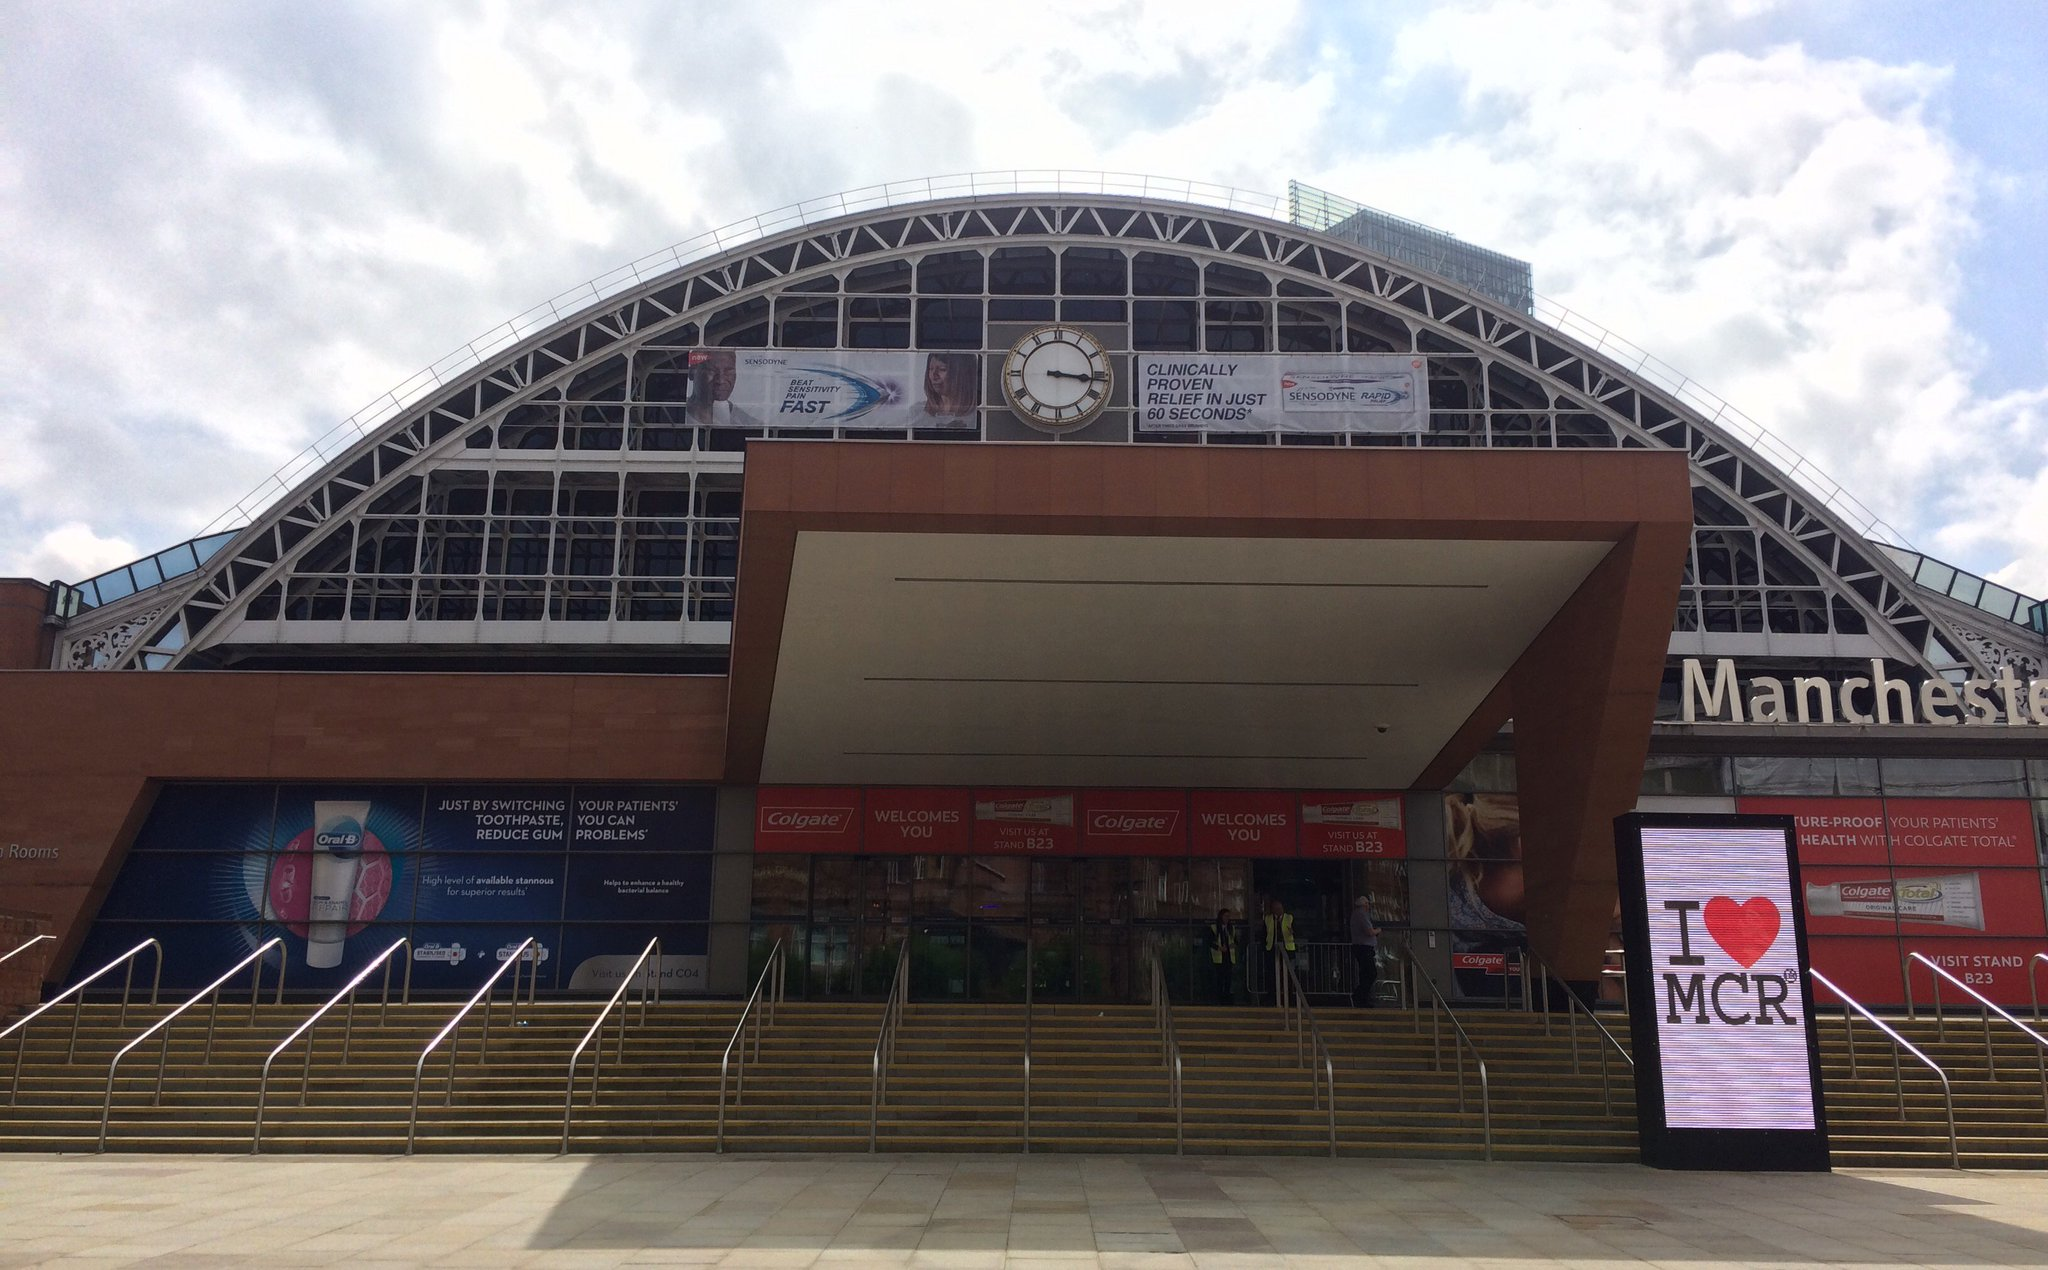 We're here in sunny Manchester getting ready for #BDA2017! We look forward to seeing everyone tomorrow https://t.co/ELhexLeRFk